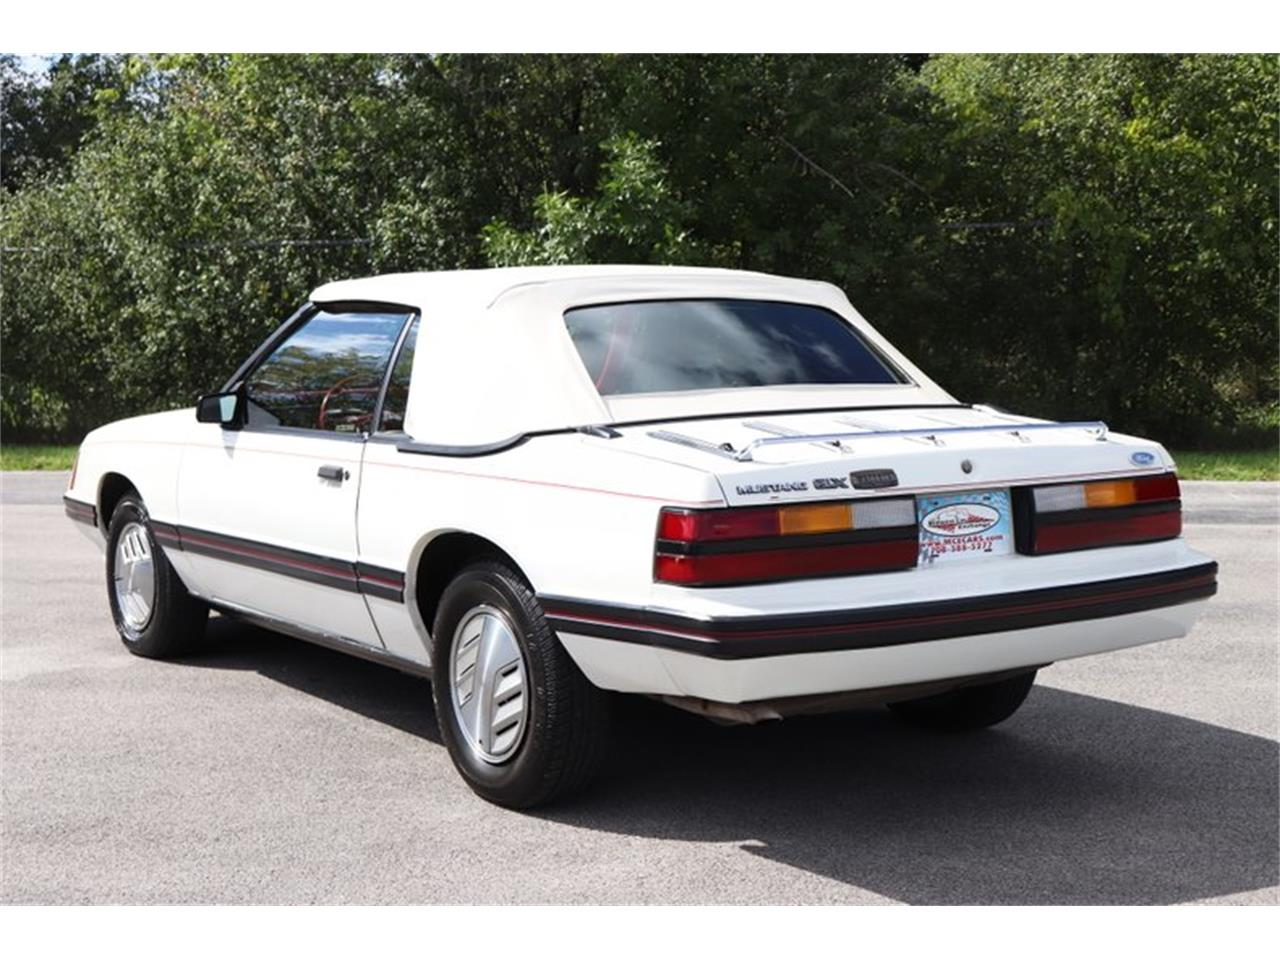 Large Picture of 1983 Ford Mustang located in Illinois - $7,900.00 Offered by Midwest Car Exchange - OHLI